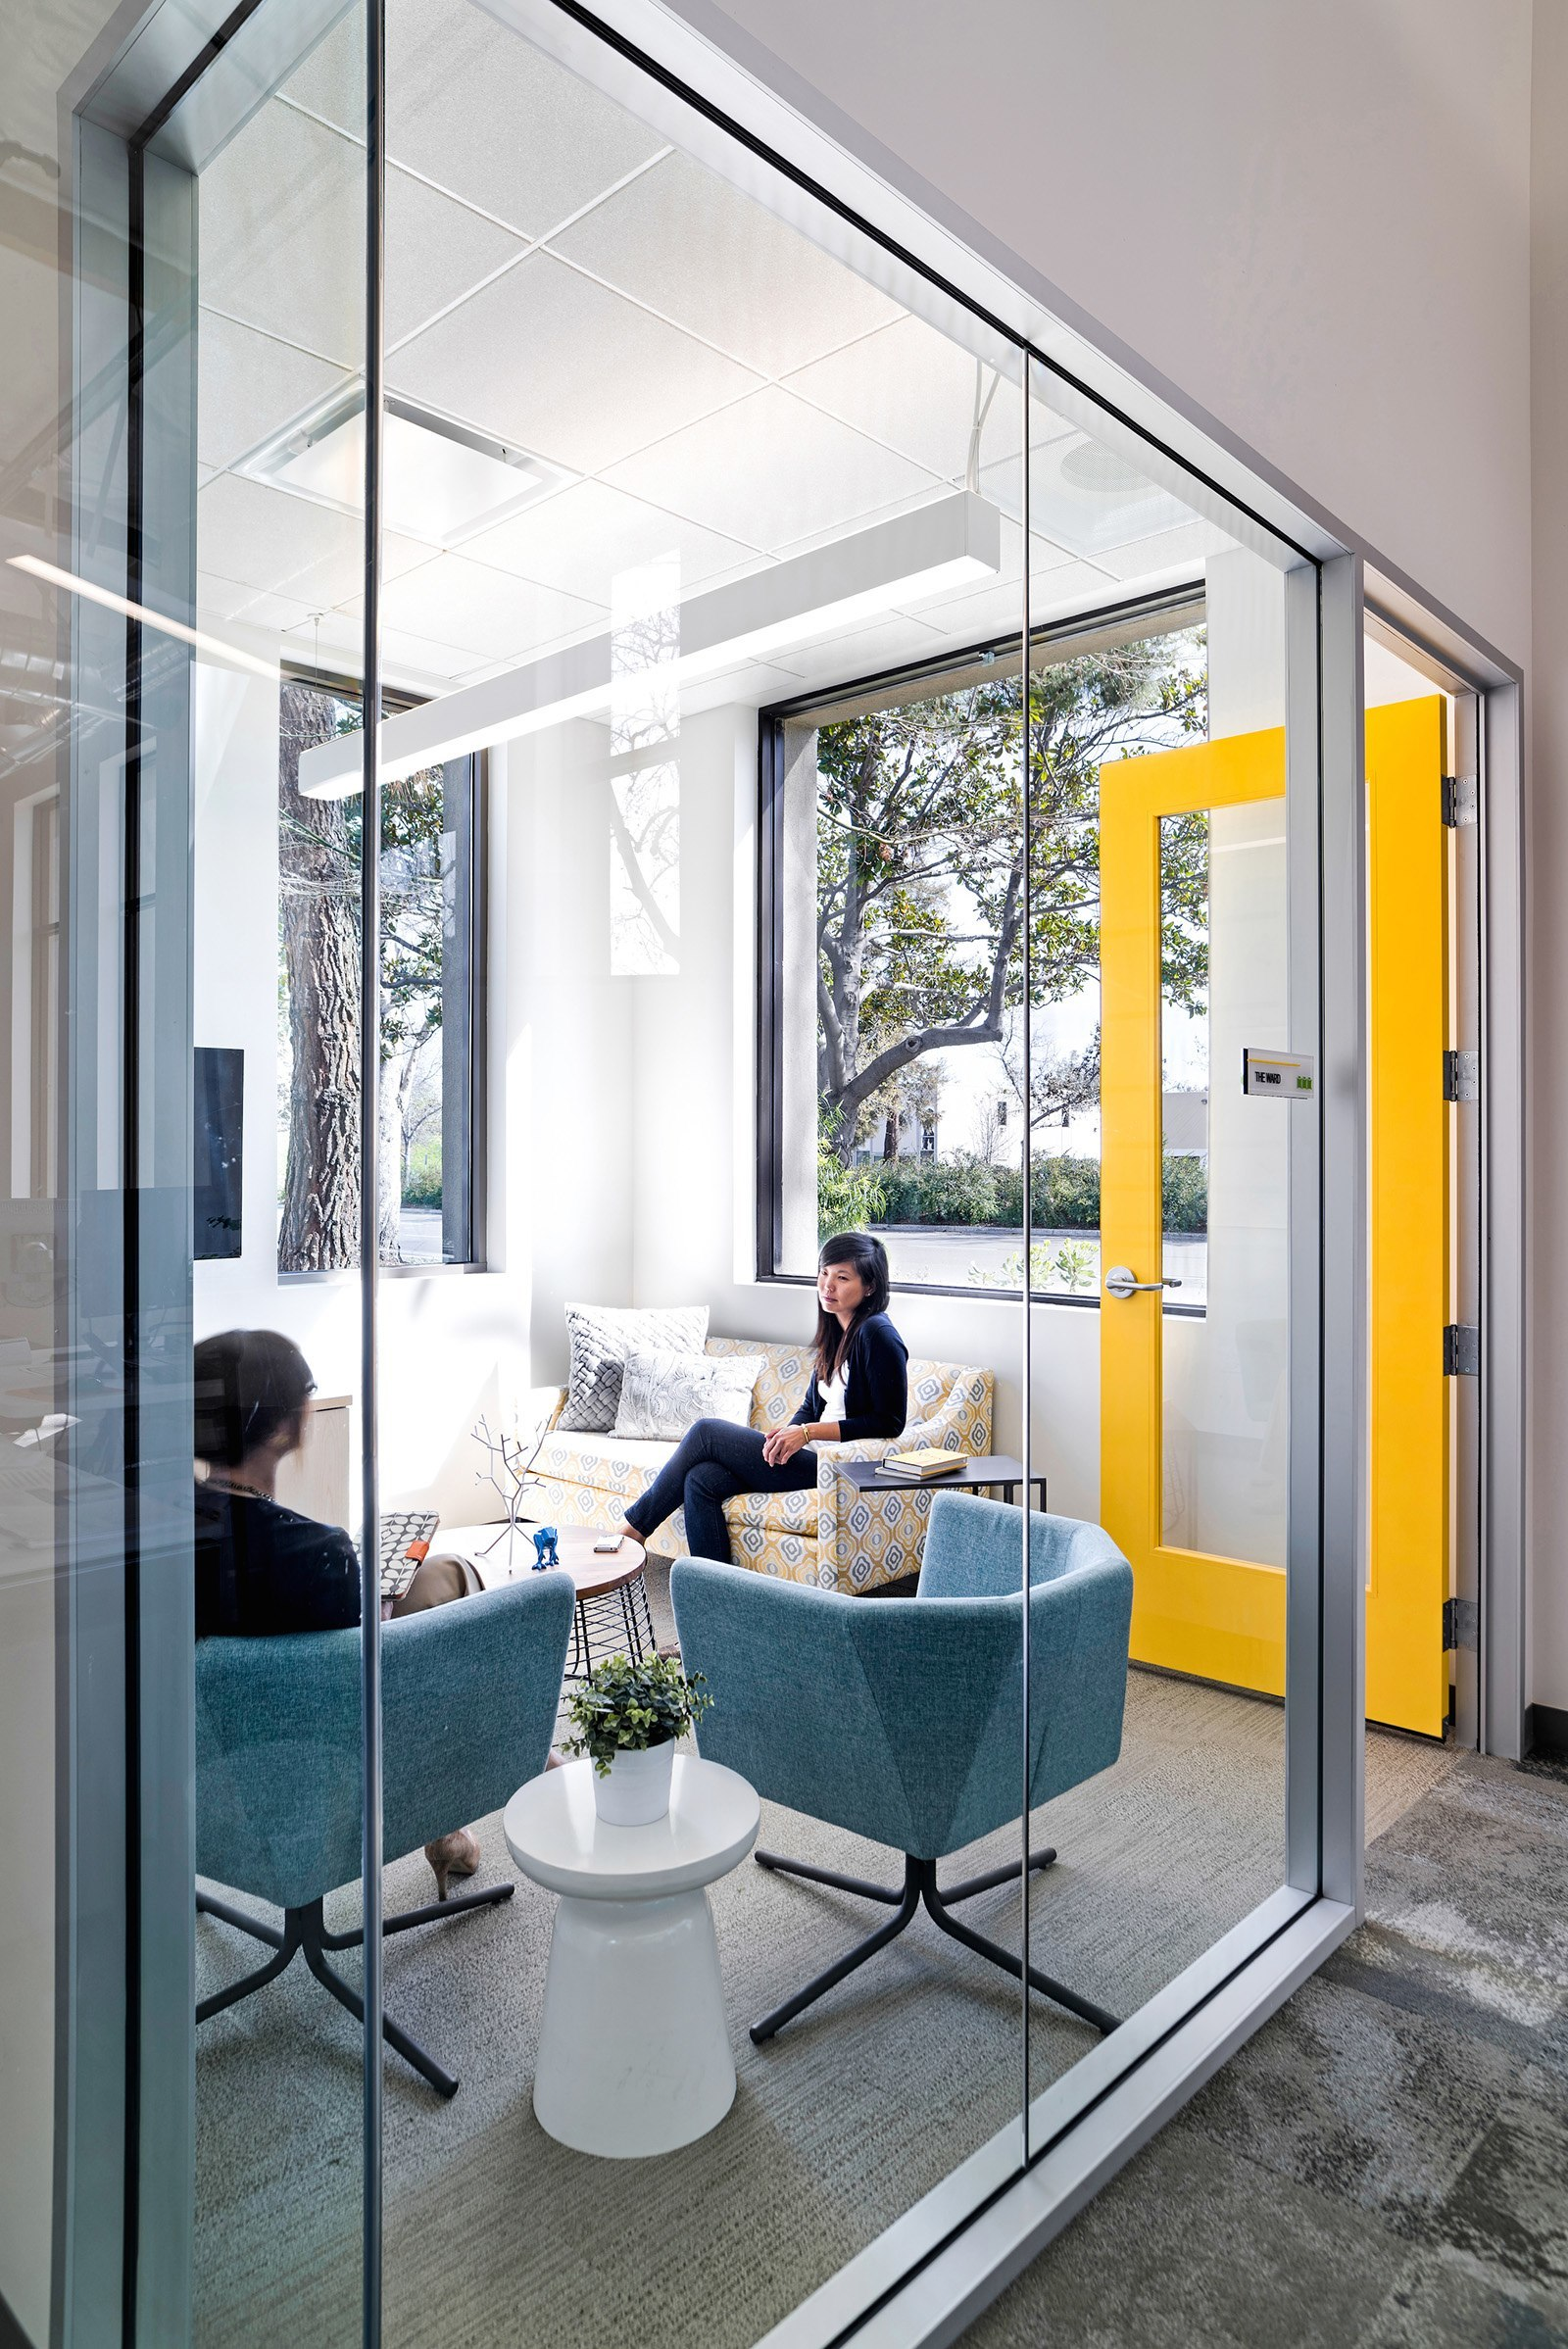 Interior Design Space: A Tour Of CPP's New Beautiful Sunnyvale Headquarters